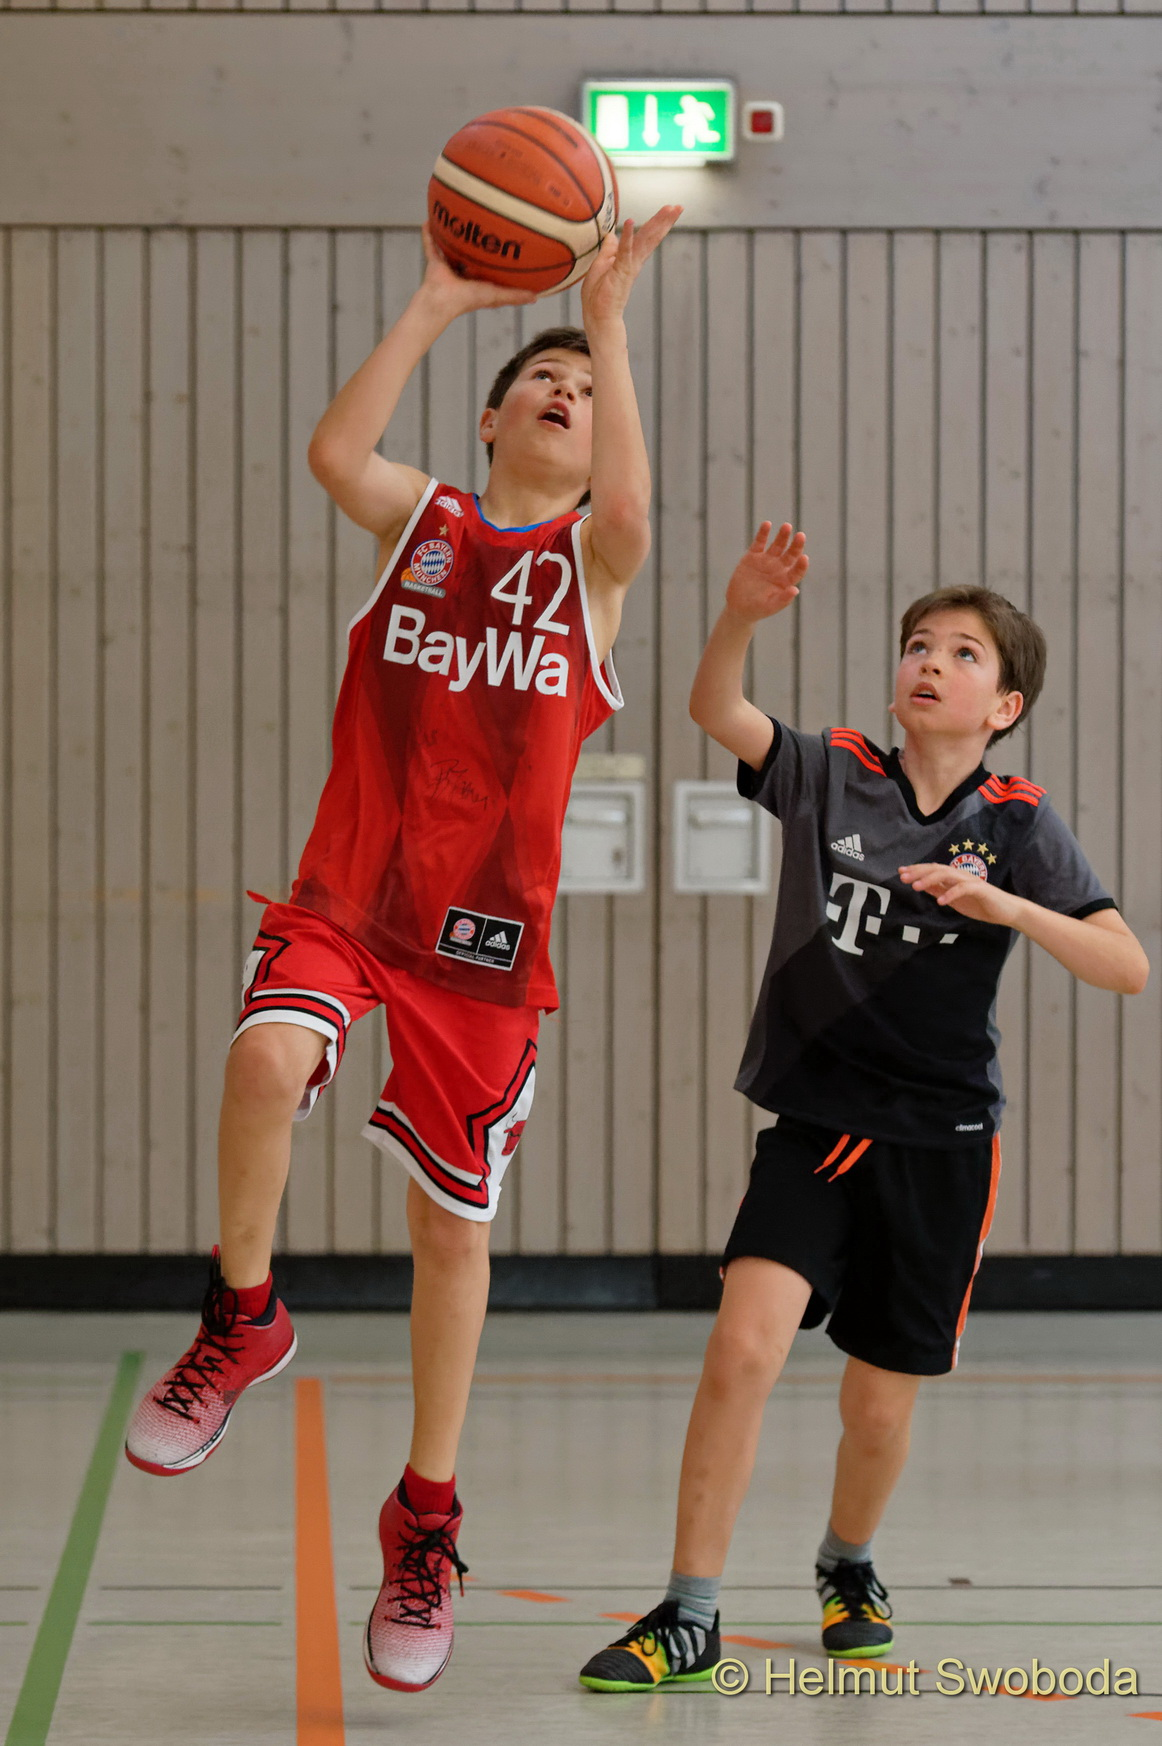 d170402-164424800-100-basketball_weilheim-mixed-turnier_33000541233_o